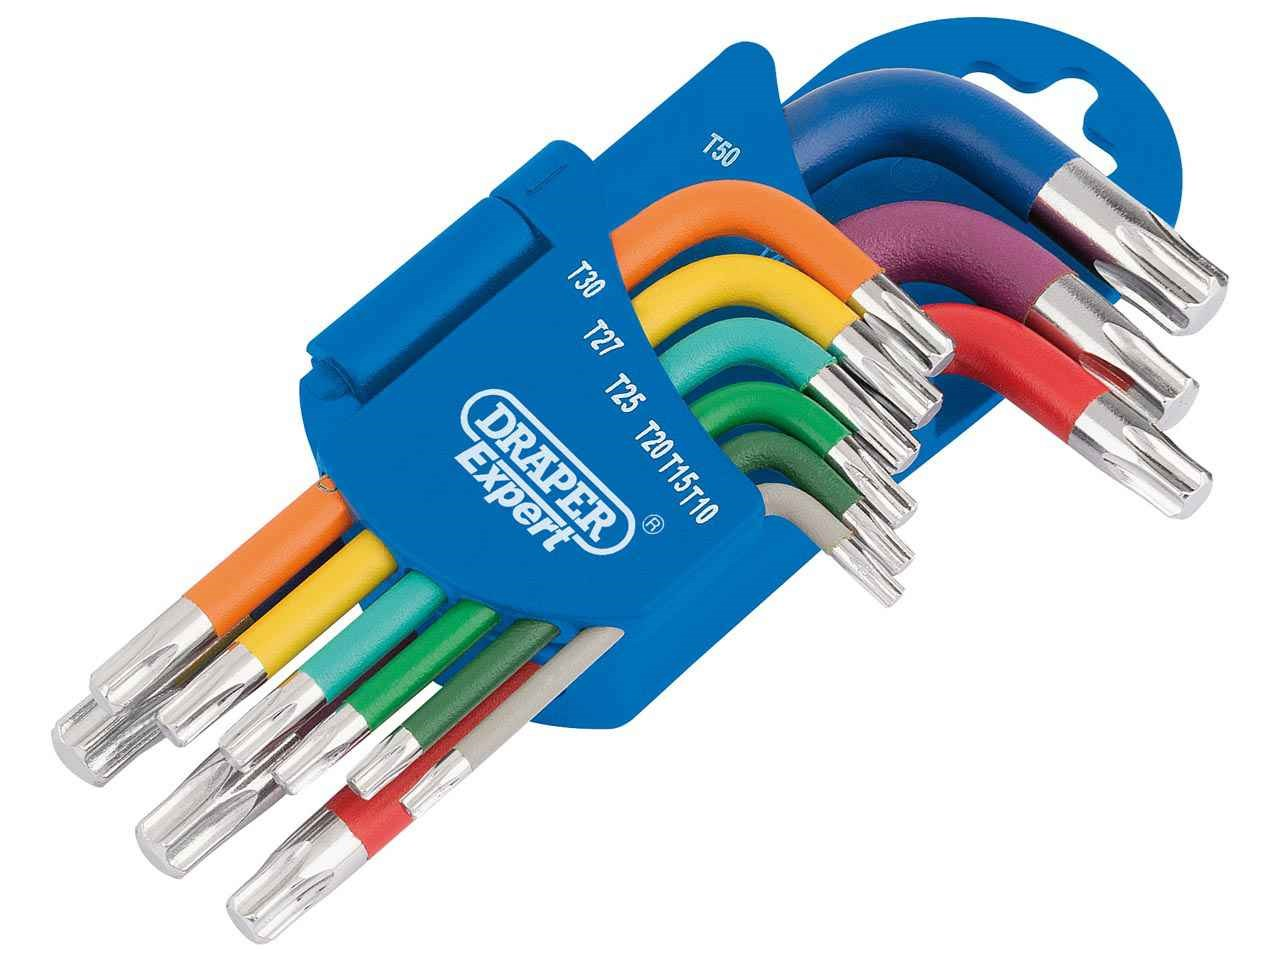 Metric Coloured Short Arm Draper TX-STAR Key Set (9 Piece) – Now Only £11.00